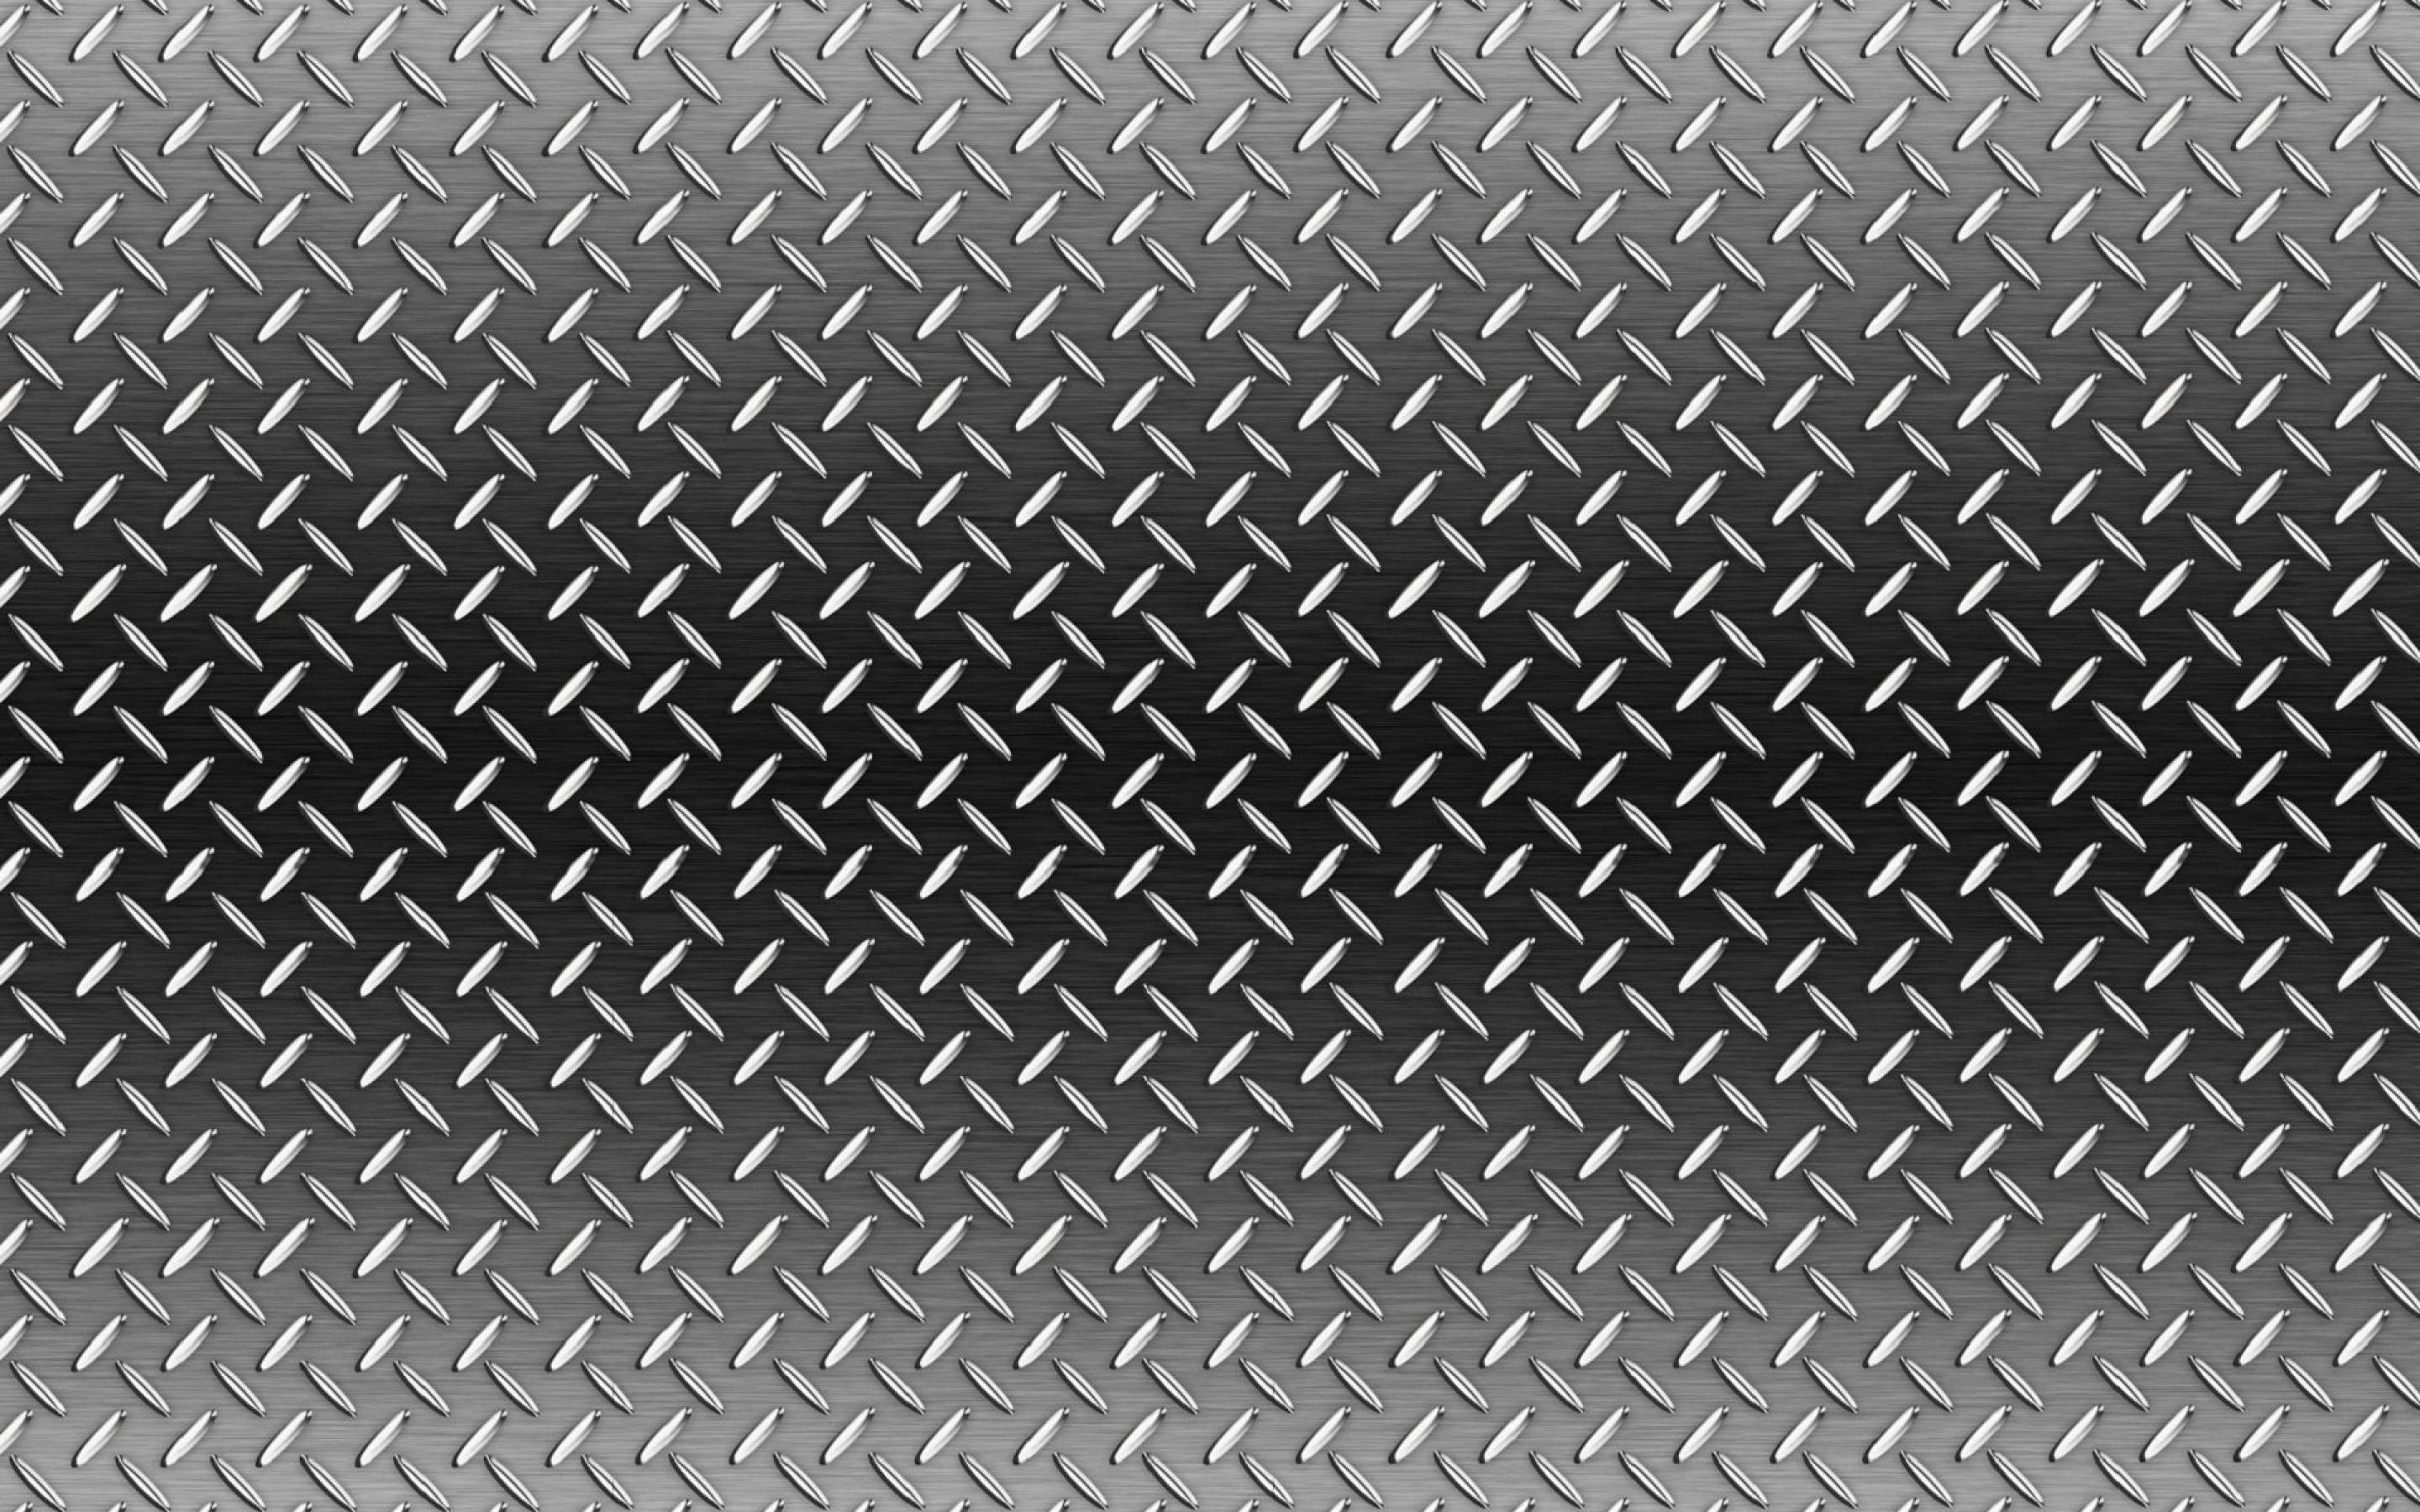 Gray serrated metal powerpoint backgrounds #3813